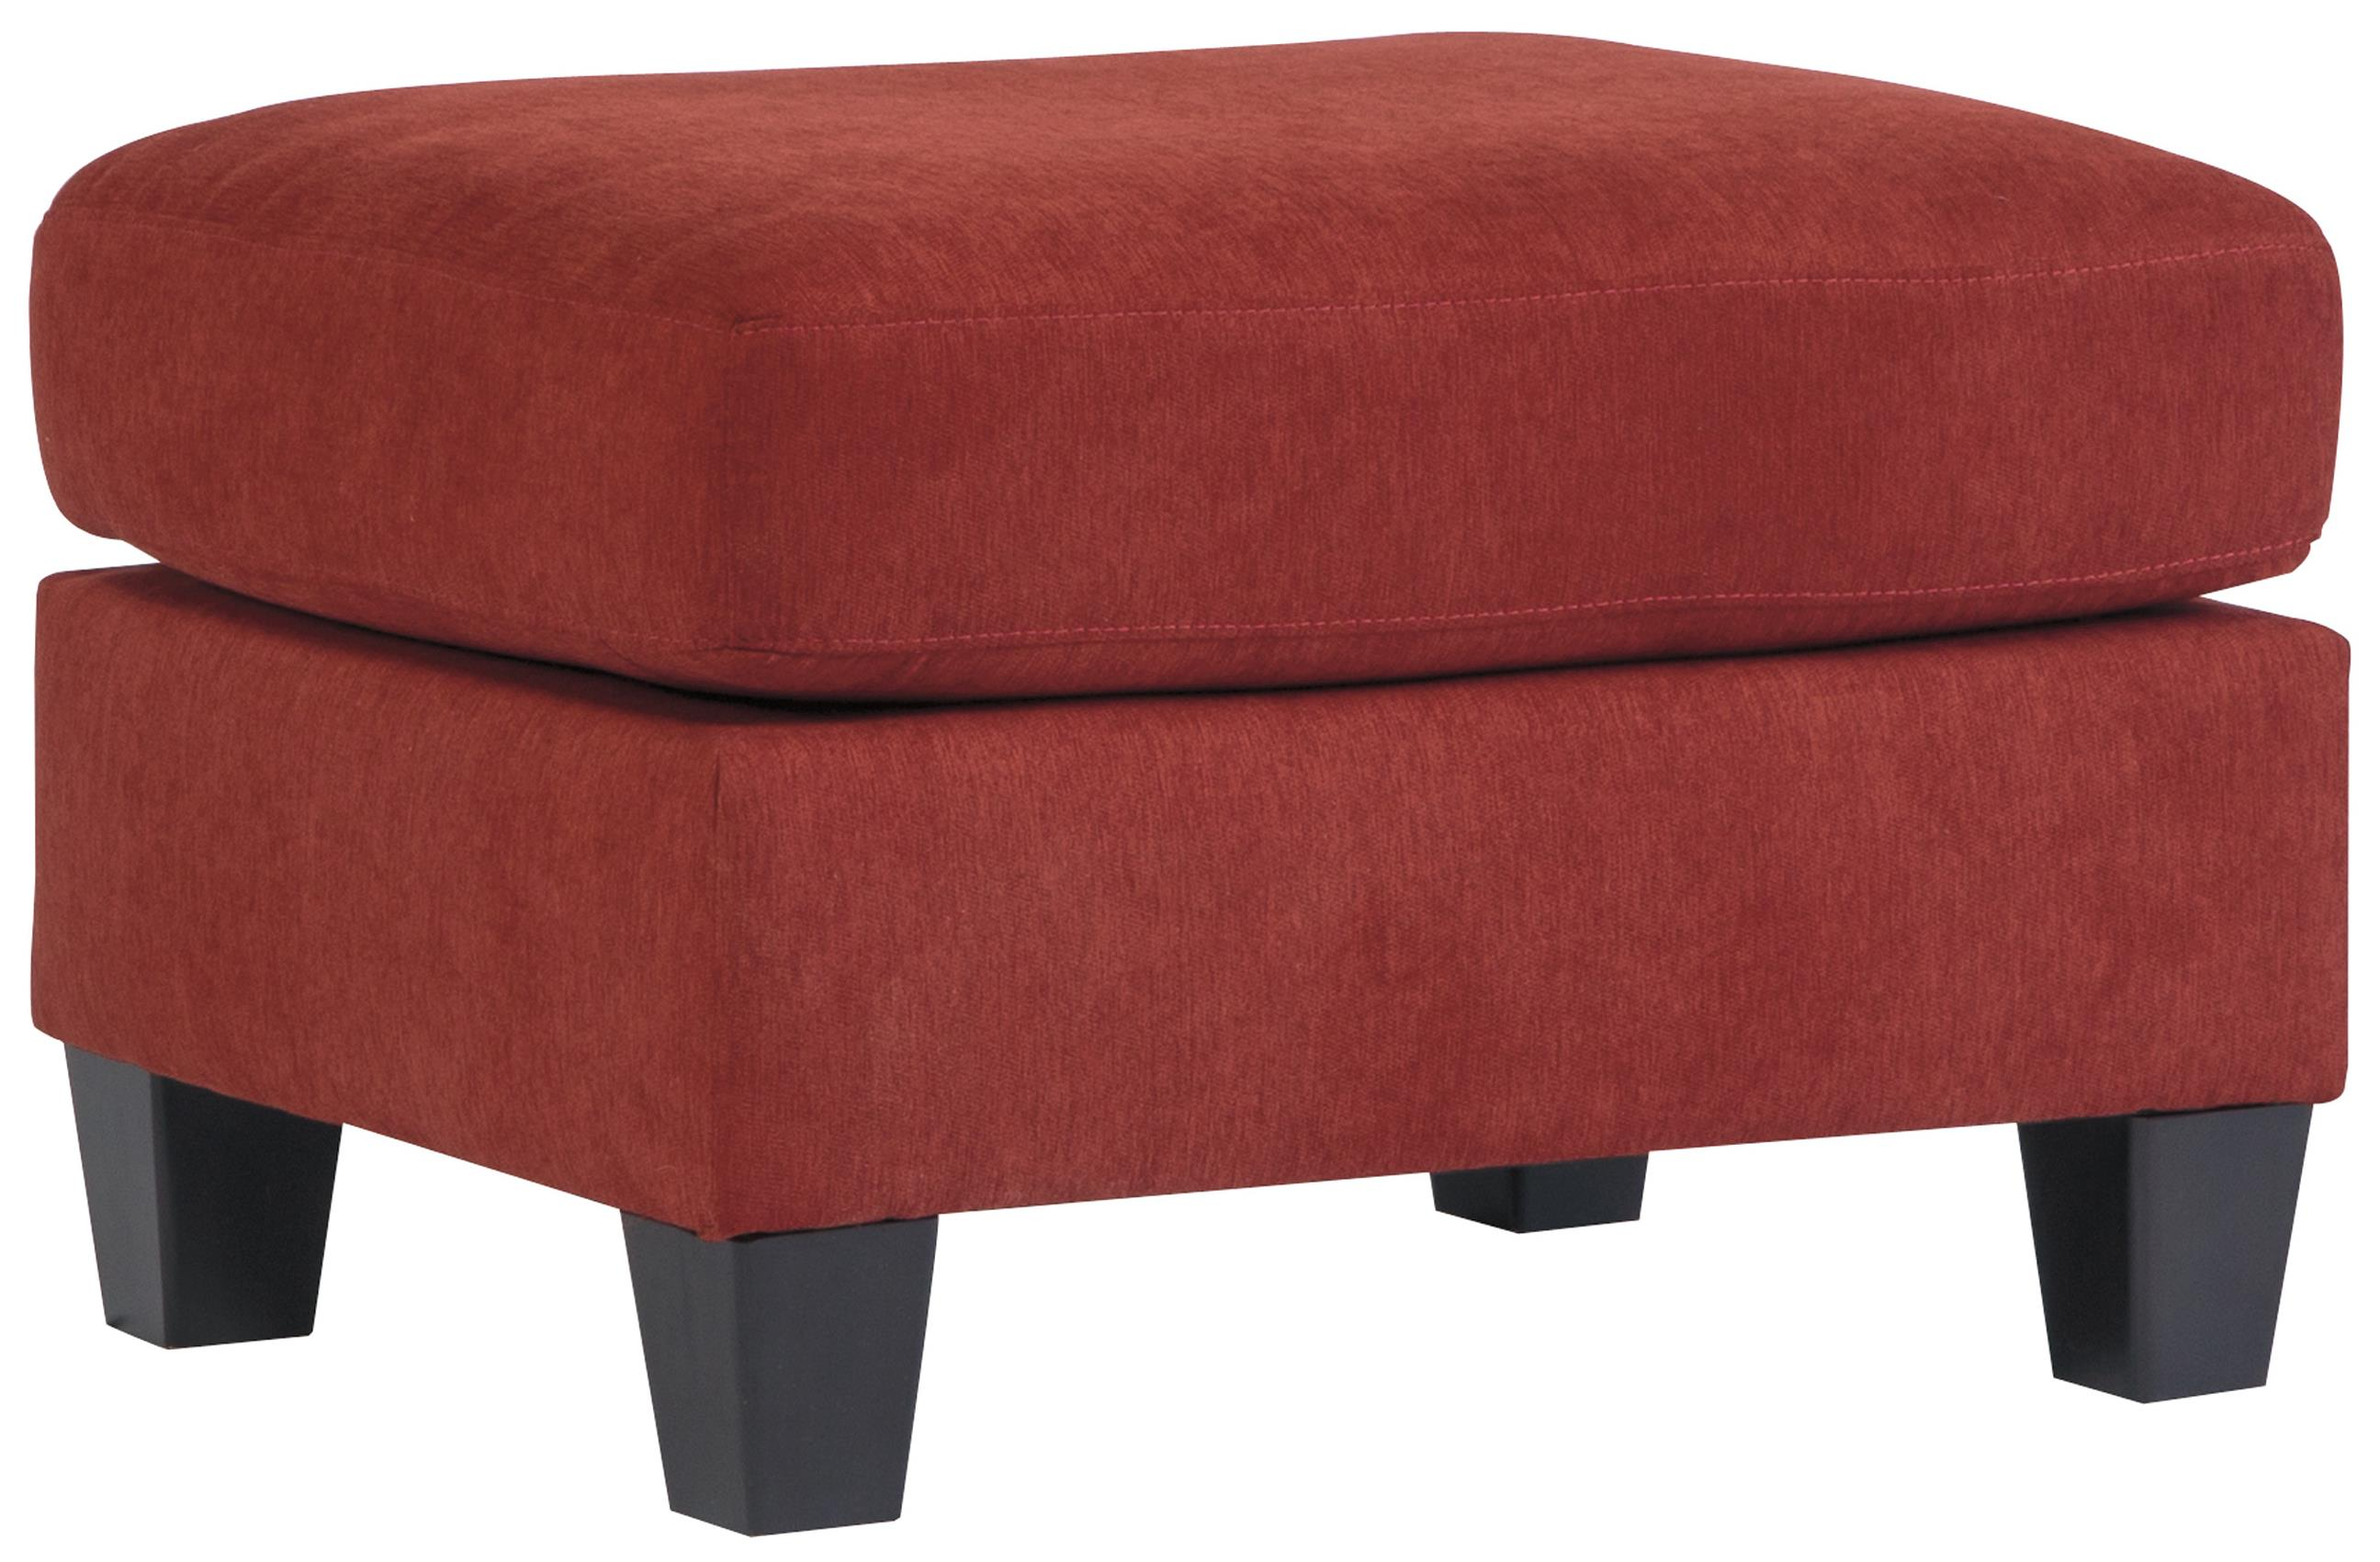 Signature Design by Ashley Sagen Ottoman - Item Number: 9390314